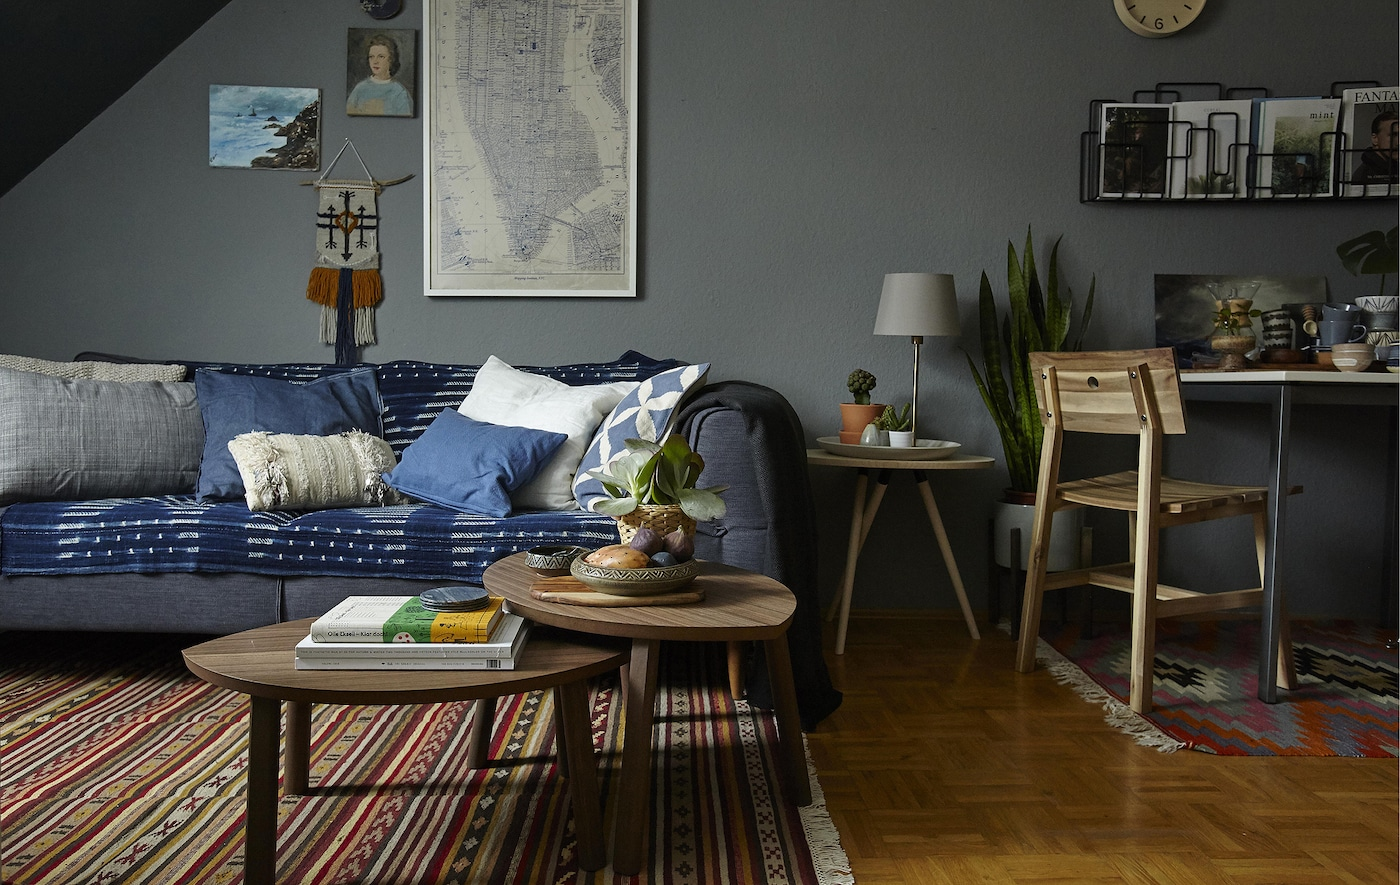 Big ideas for a small space - IKEA